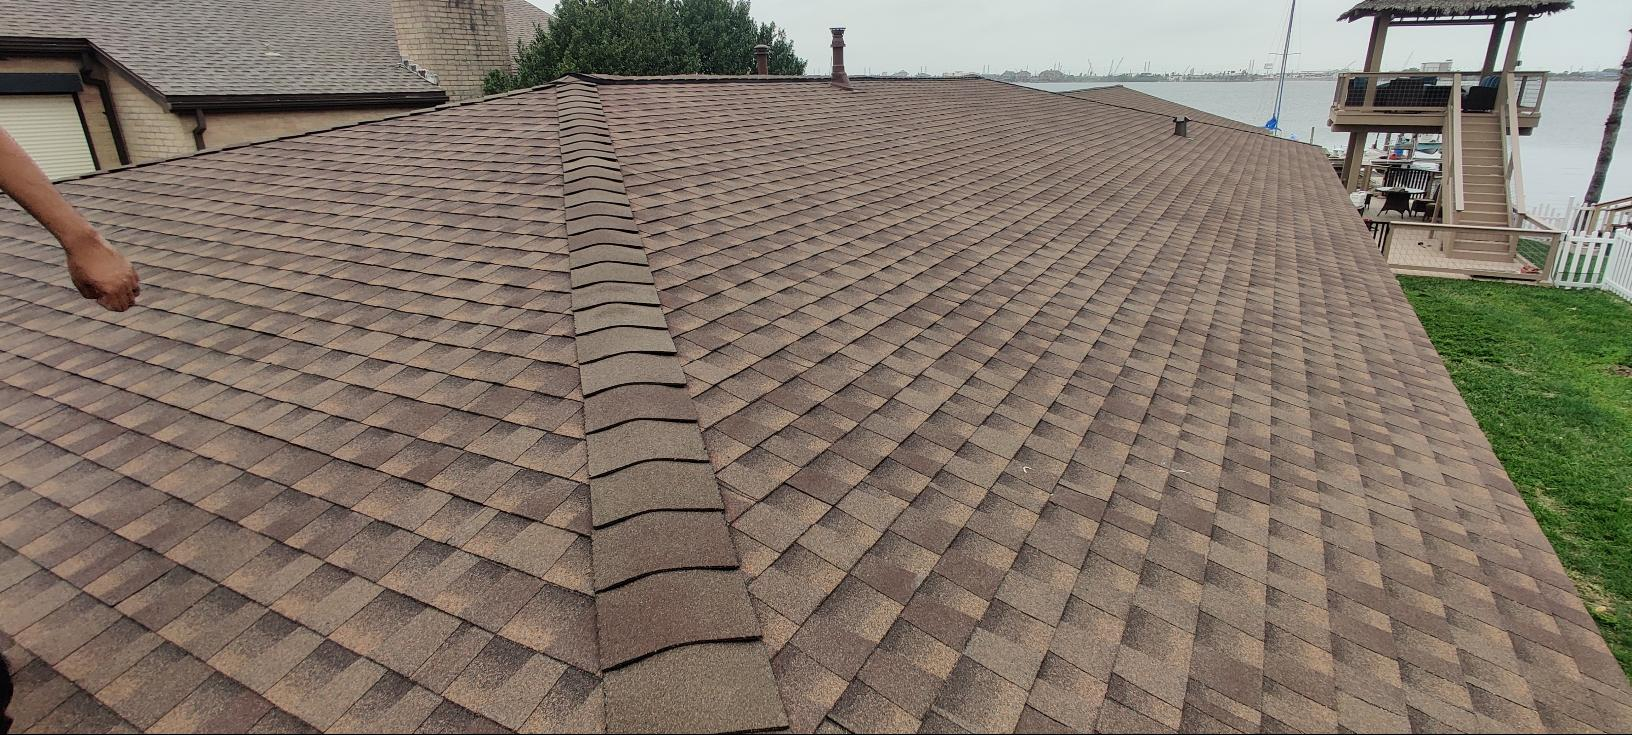 GAF Roof Replacement - After Photo